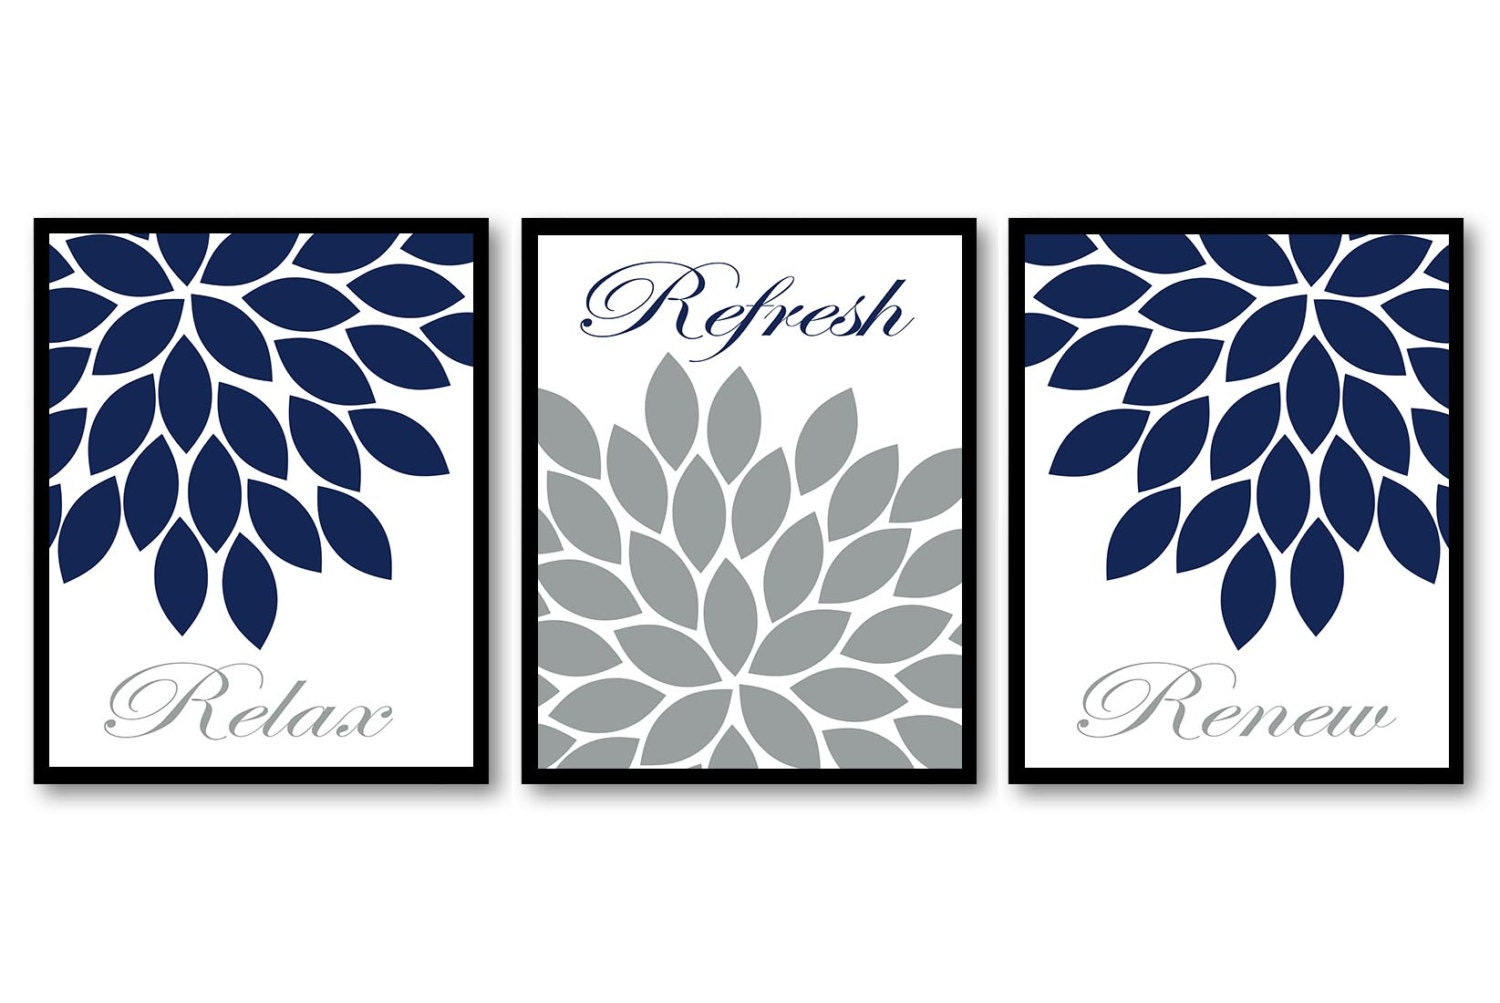 Bathroom wall decor navy blue white grey chrysanthemum flower for Blue and gray bathroom accessories